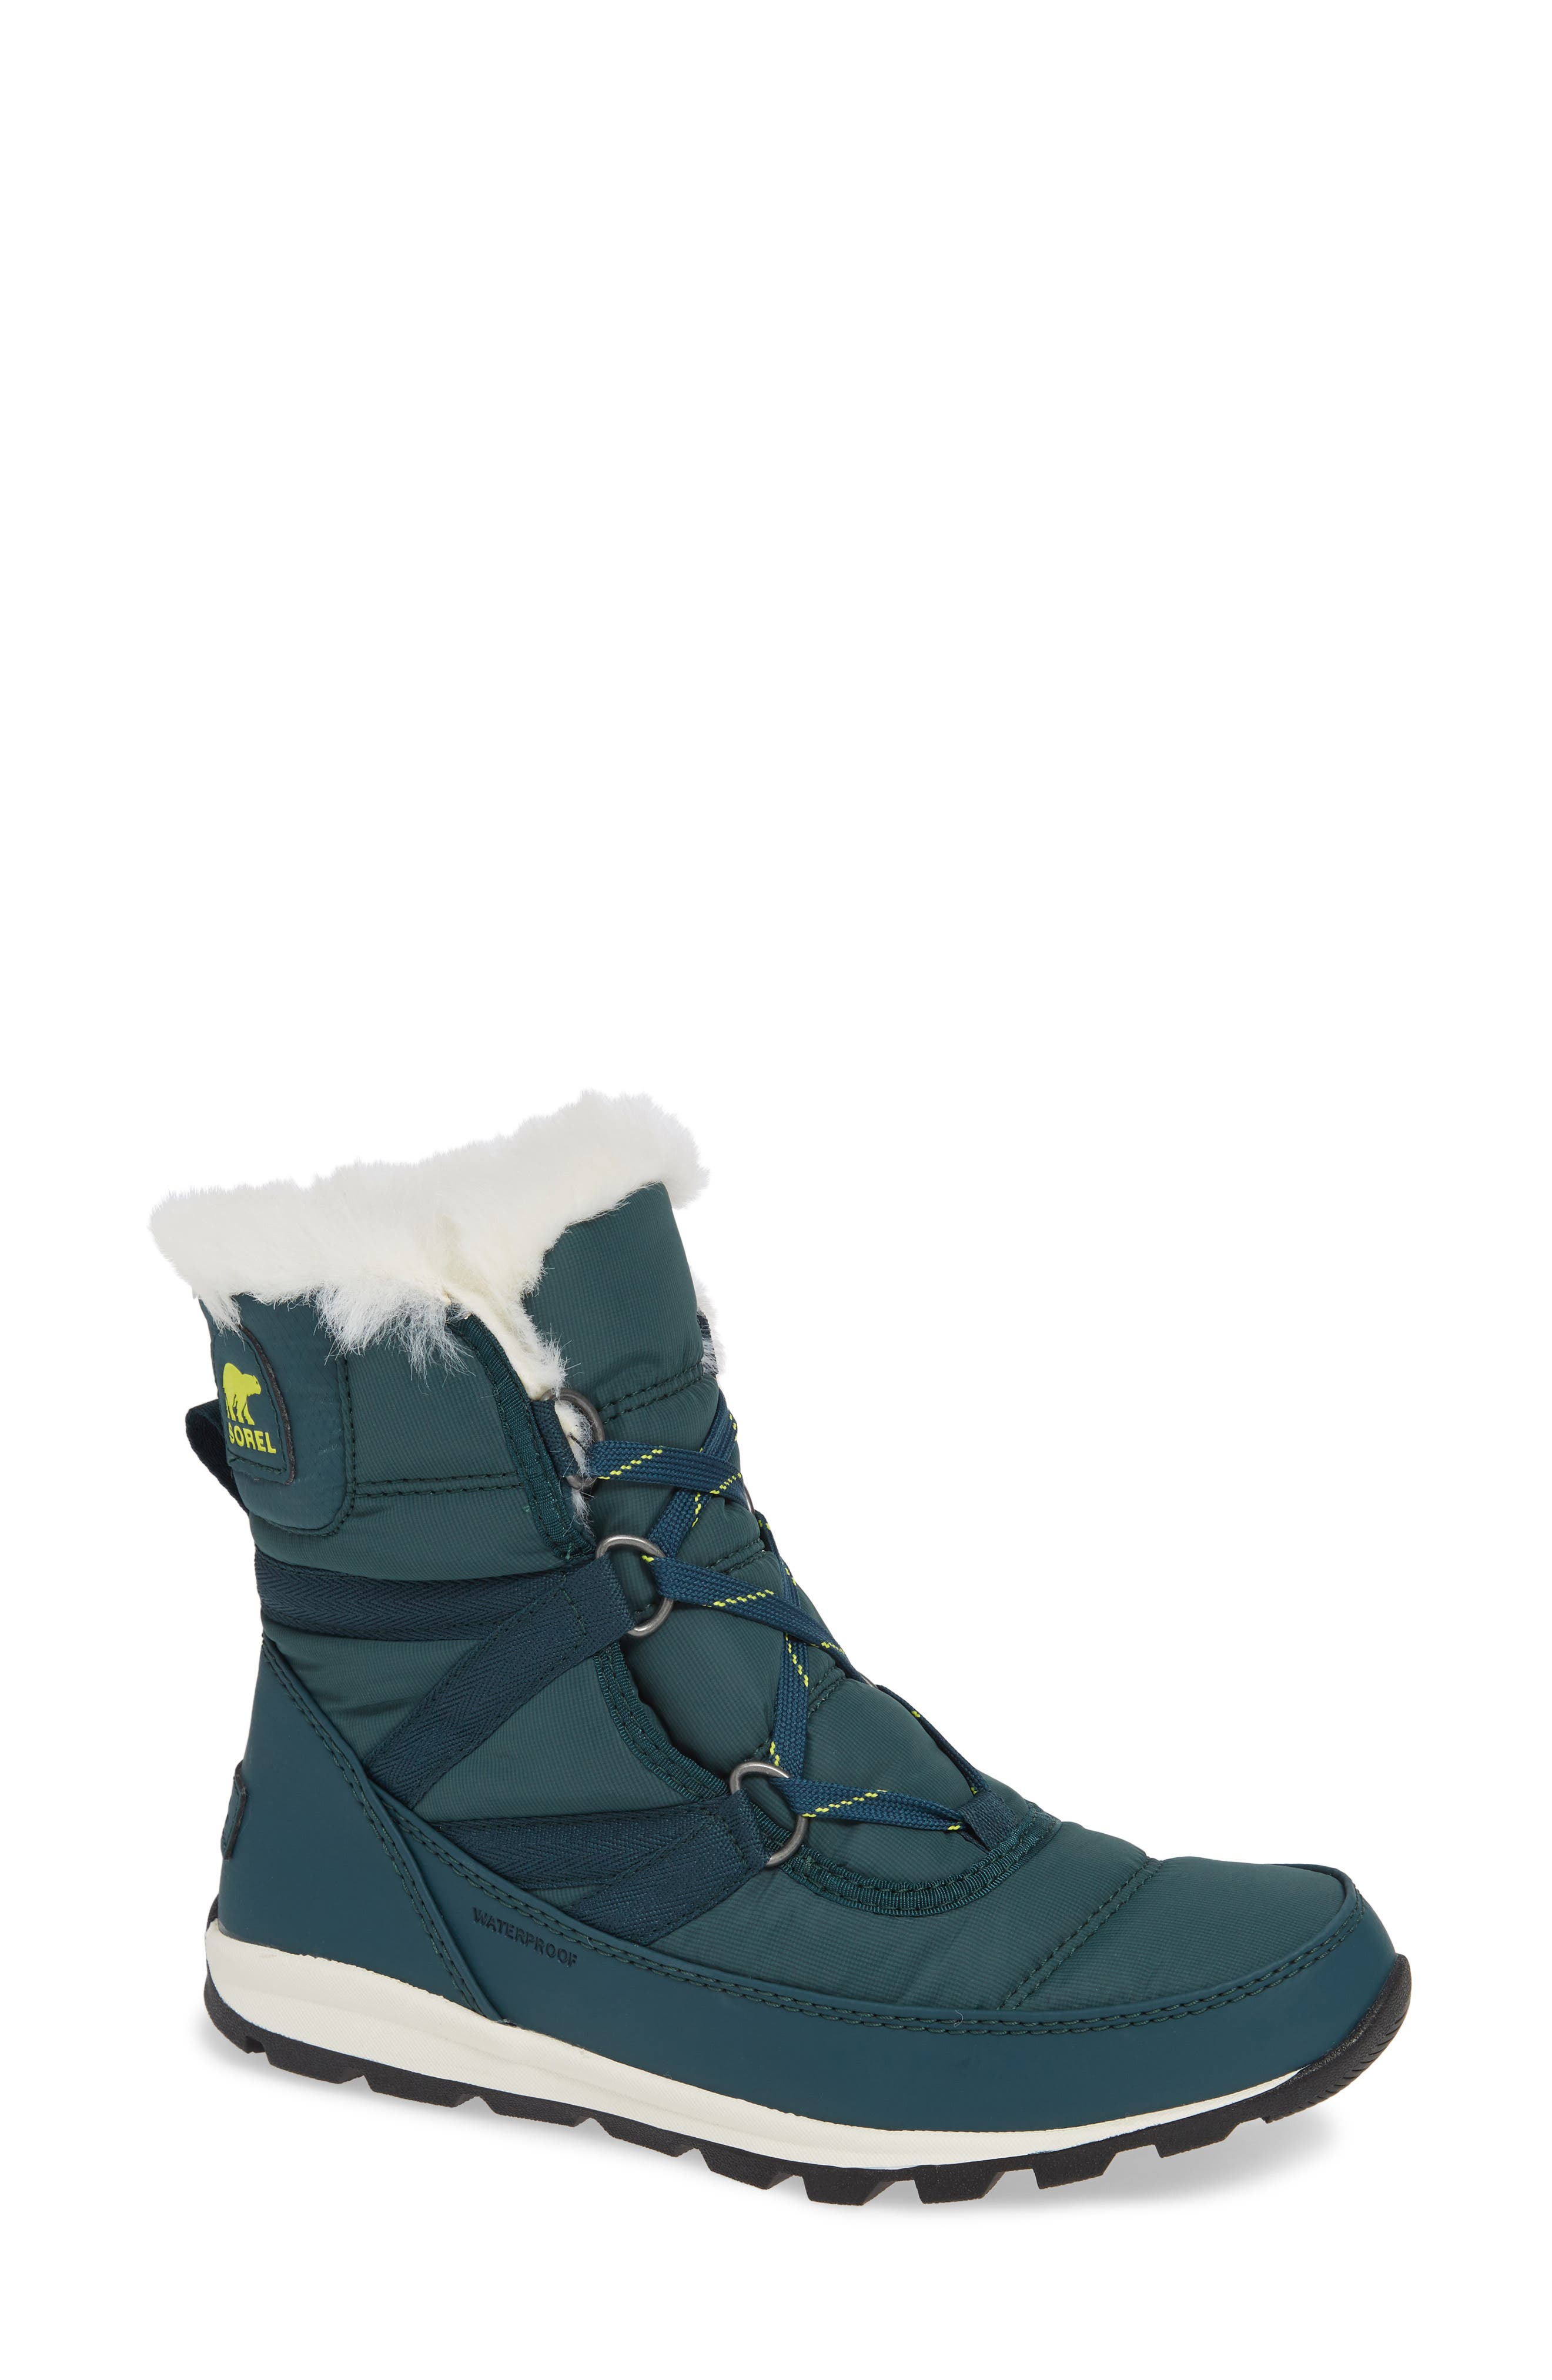 Sorel Whitney Snow Bootie, Blue/green